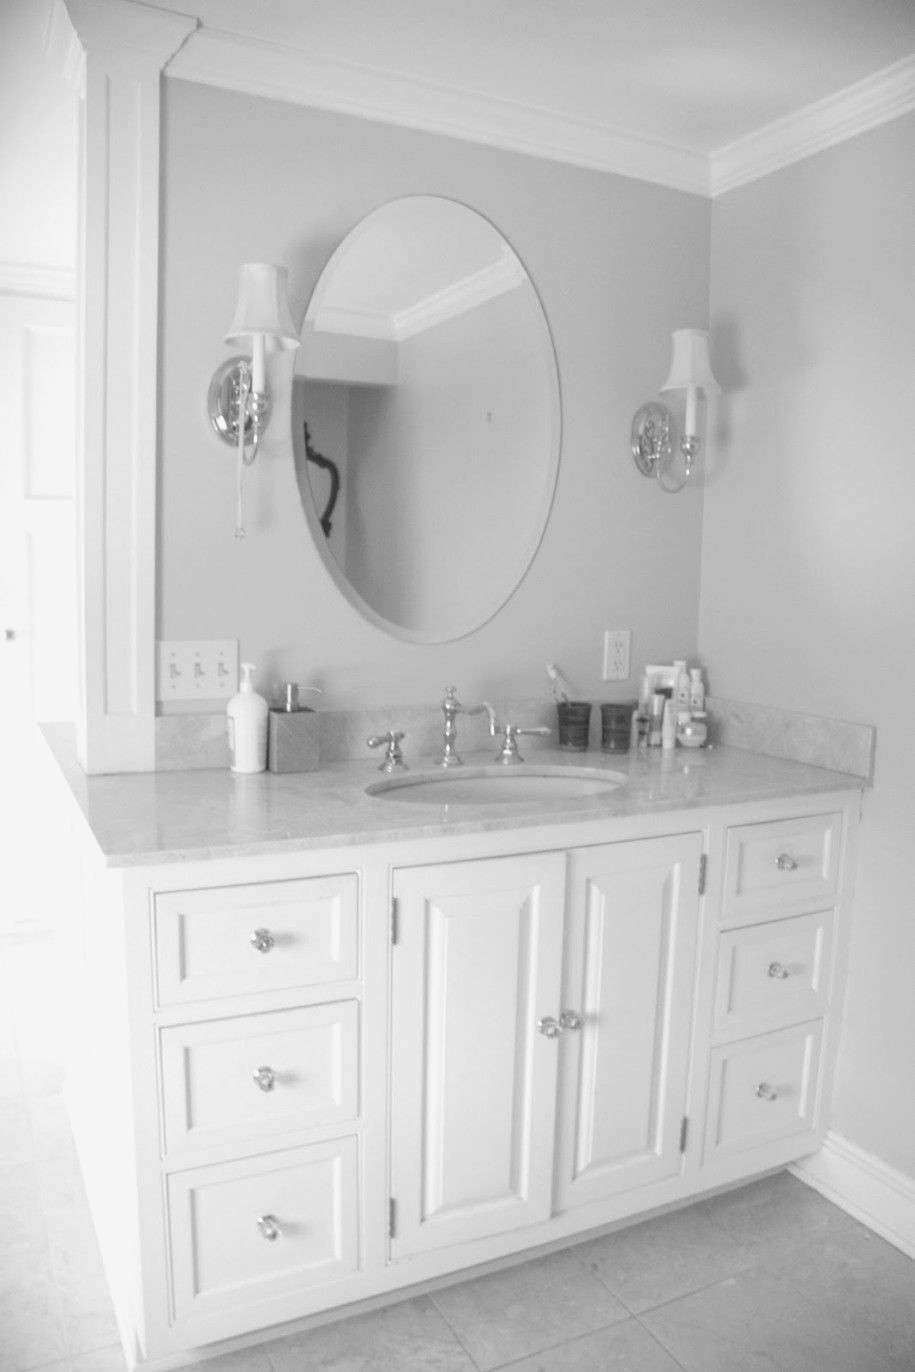 New White Bathroom Vanities Lowes Luxury Oval Mirror Luxurybathroomcabinetsuk White Vanity Bathroom Bathroom Ideas Uk